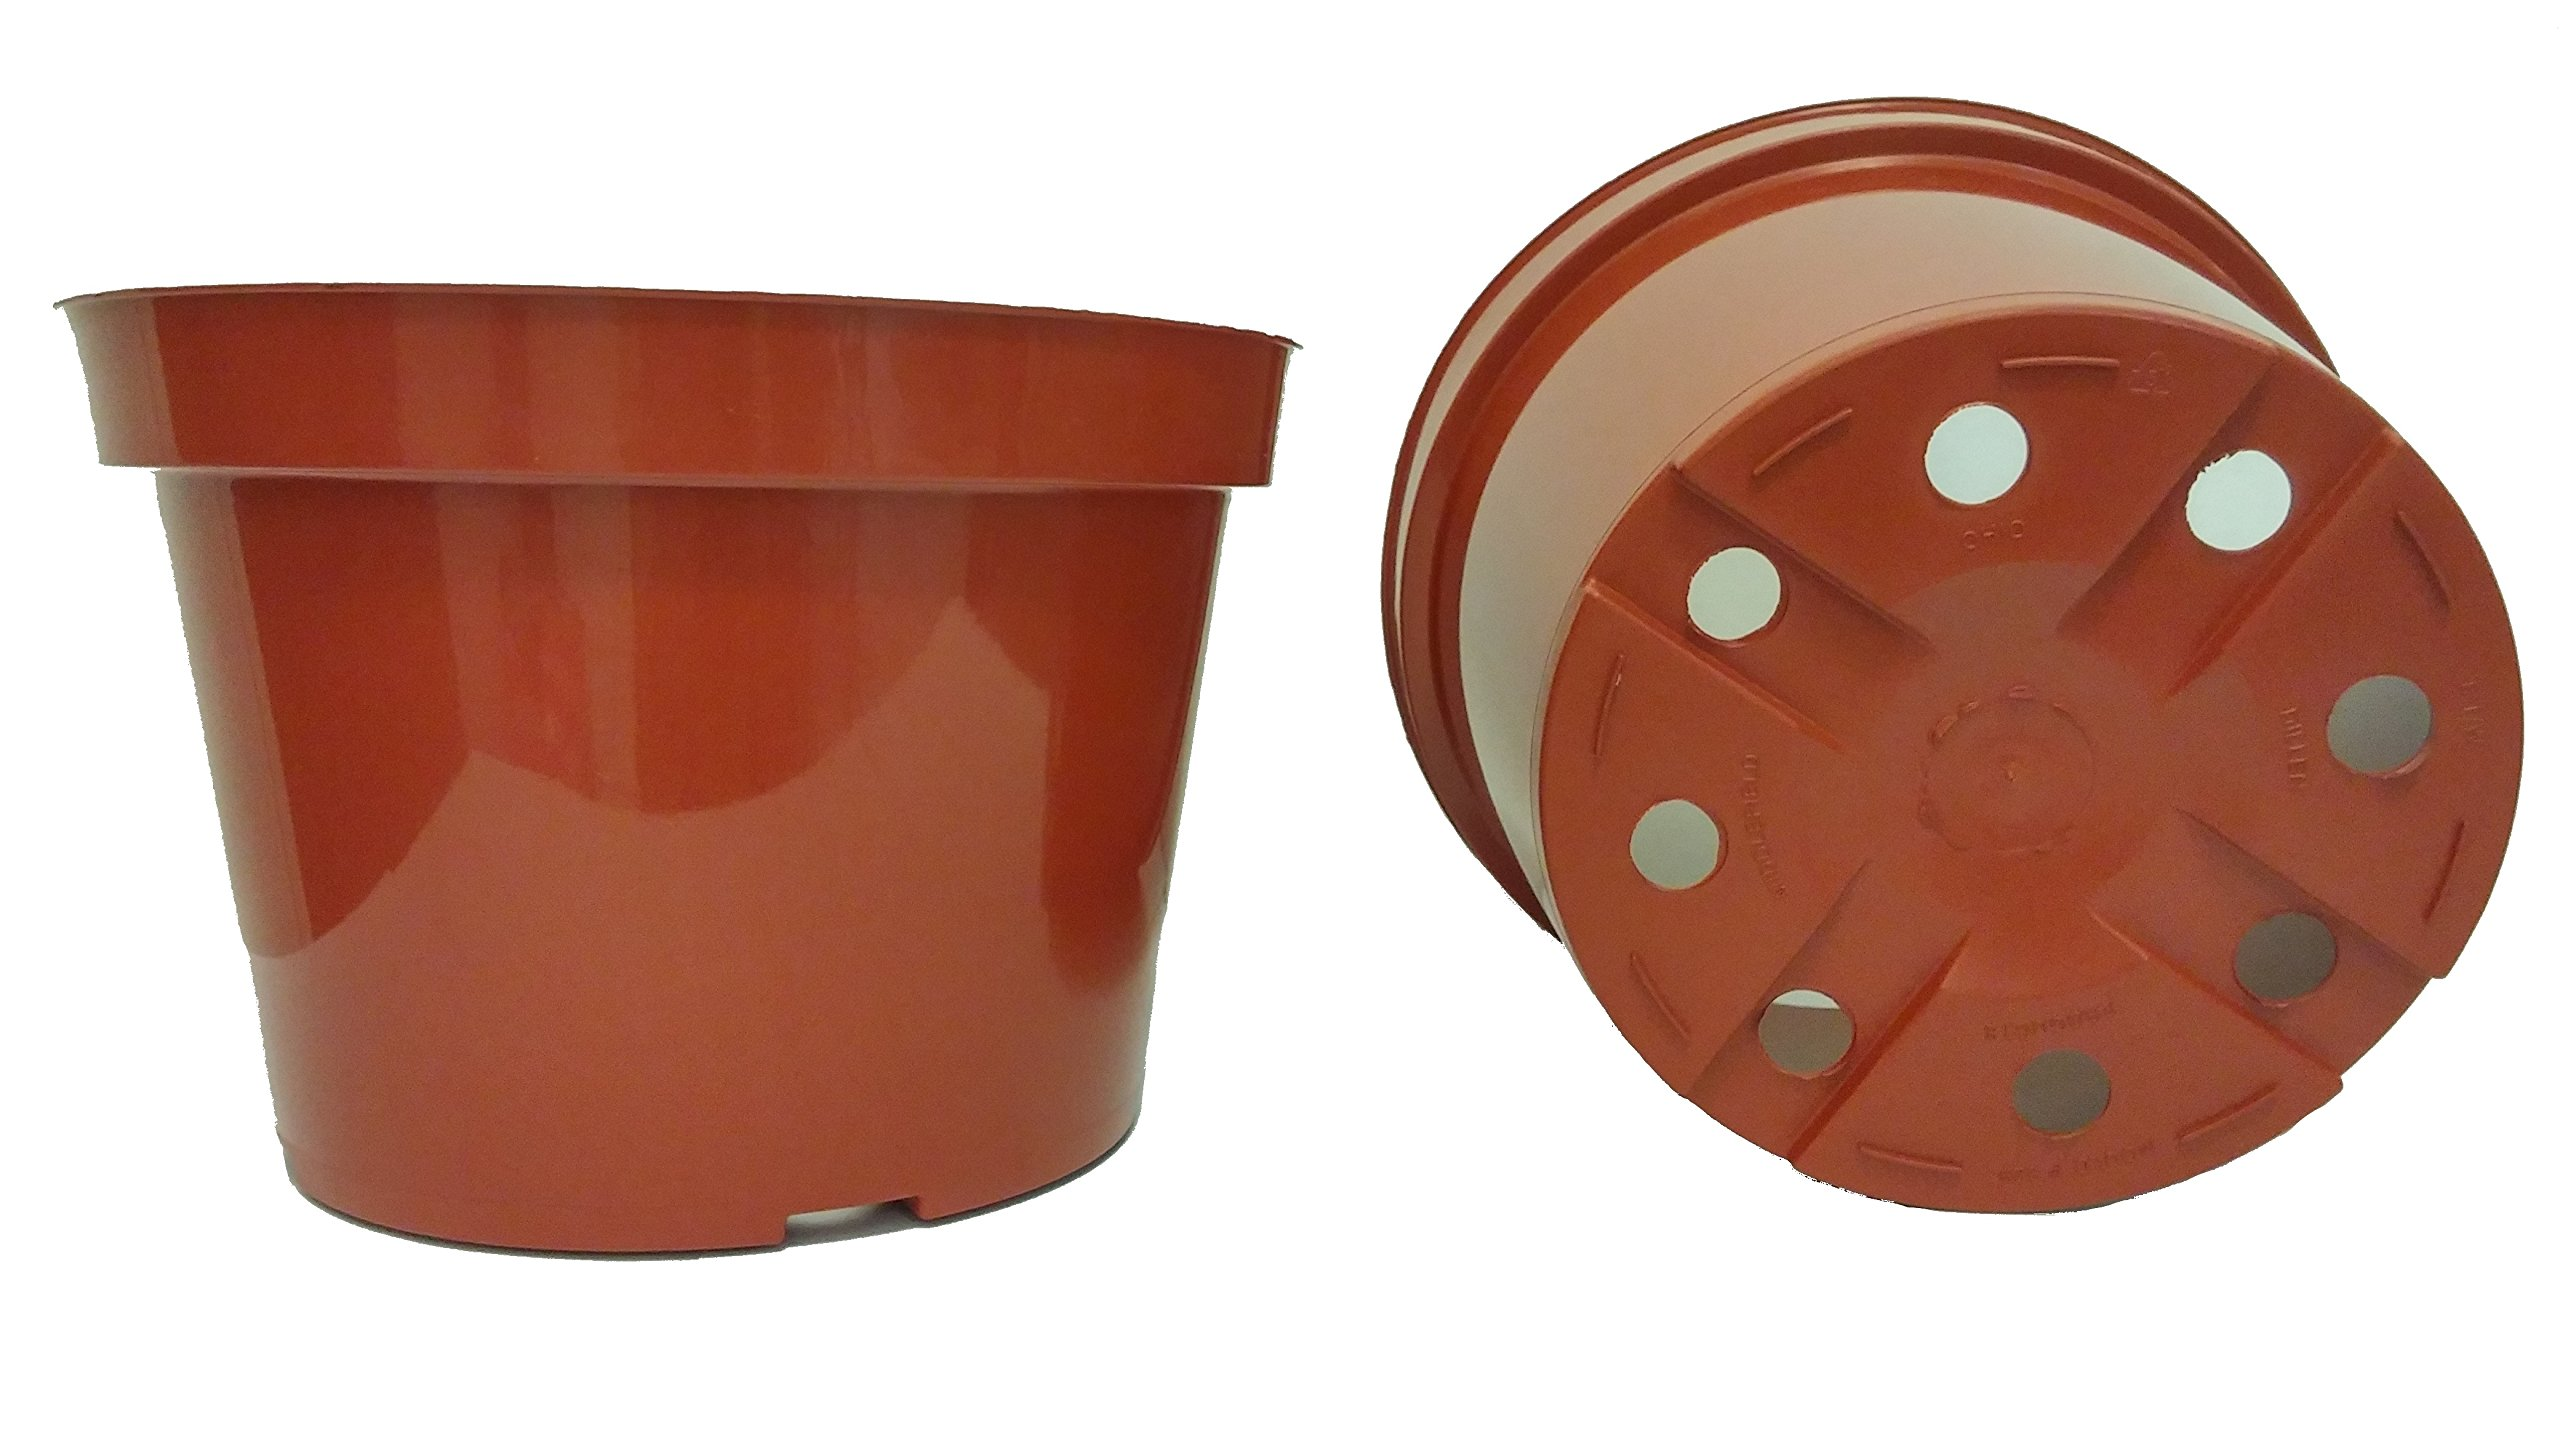 20 New 6 Inch Azalea Plastic Nursery Pots ~ Pots ARE 6 Inch Round At the Top and 4.25 Inch Deep, Color Terracotta